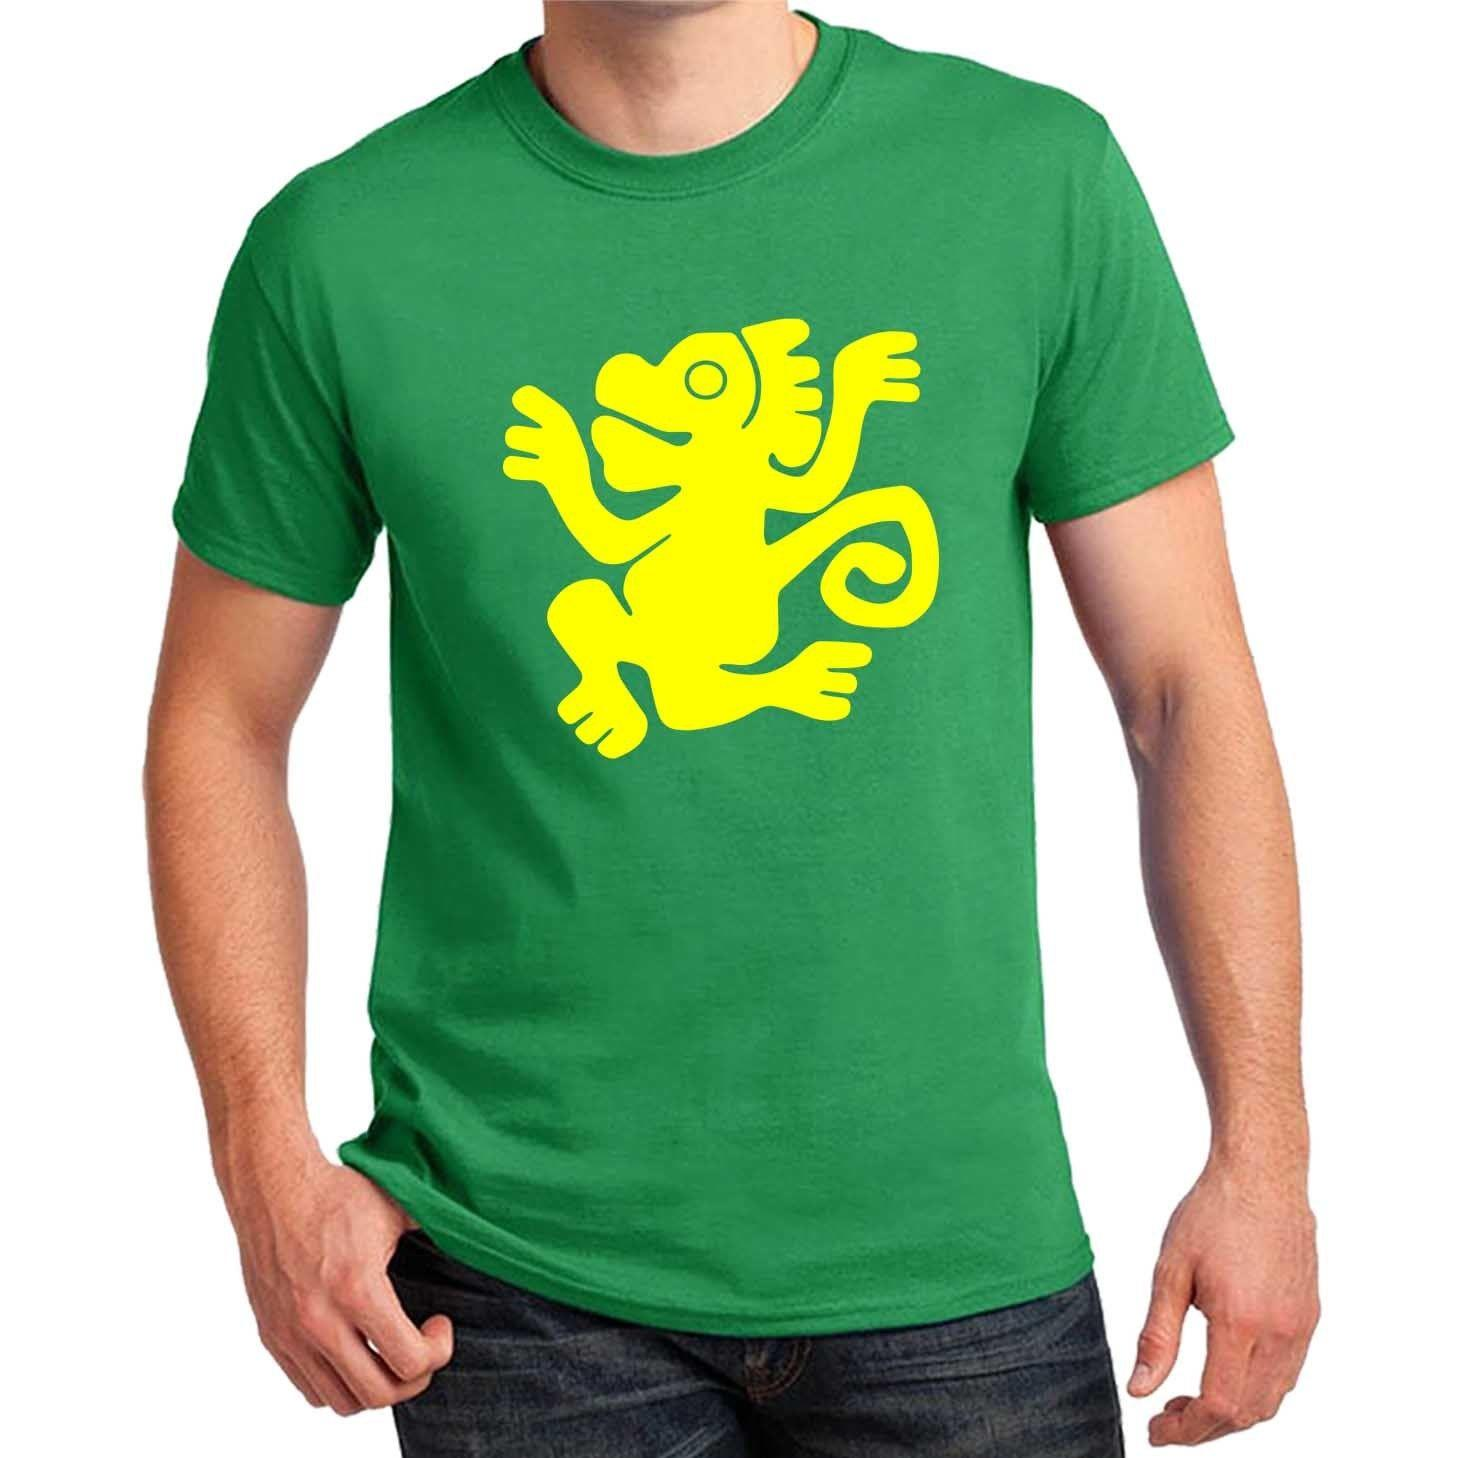 Legends of Hidden Temple Team T-shirts Green Monkeys Halloween Costume cosplay Funny free shipping Unisex Casual